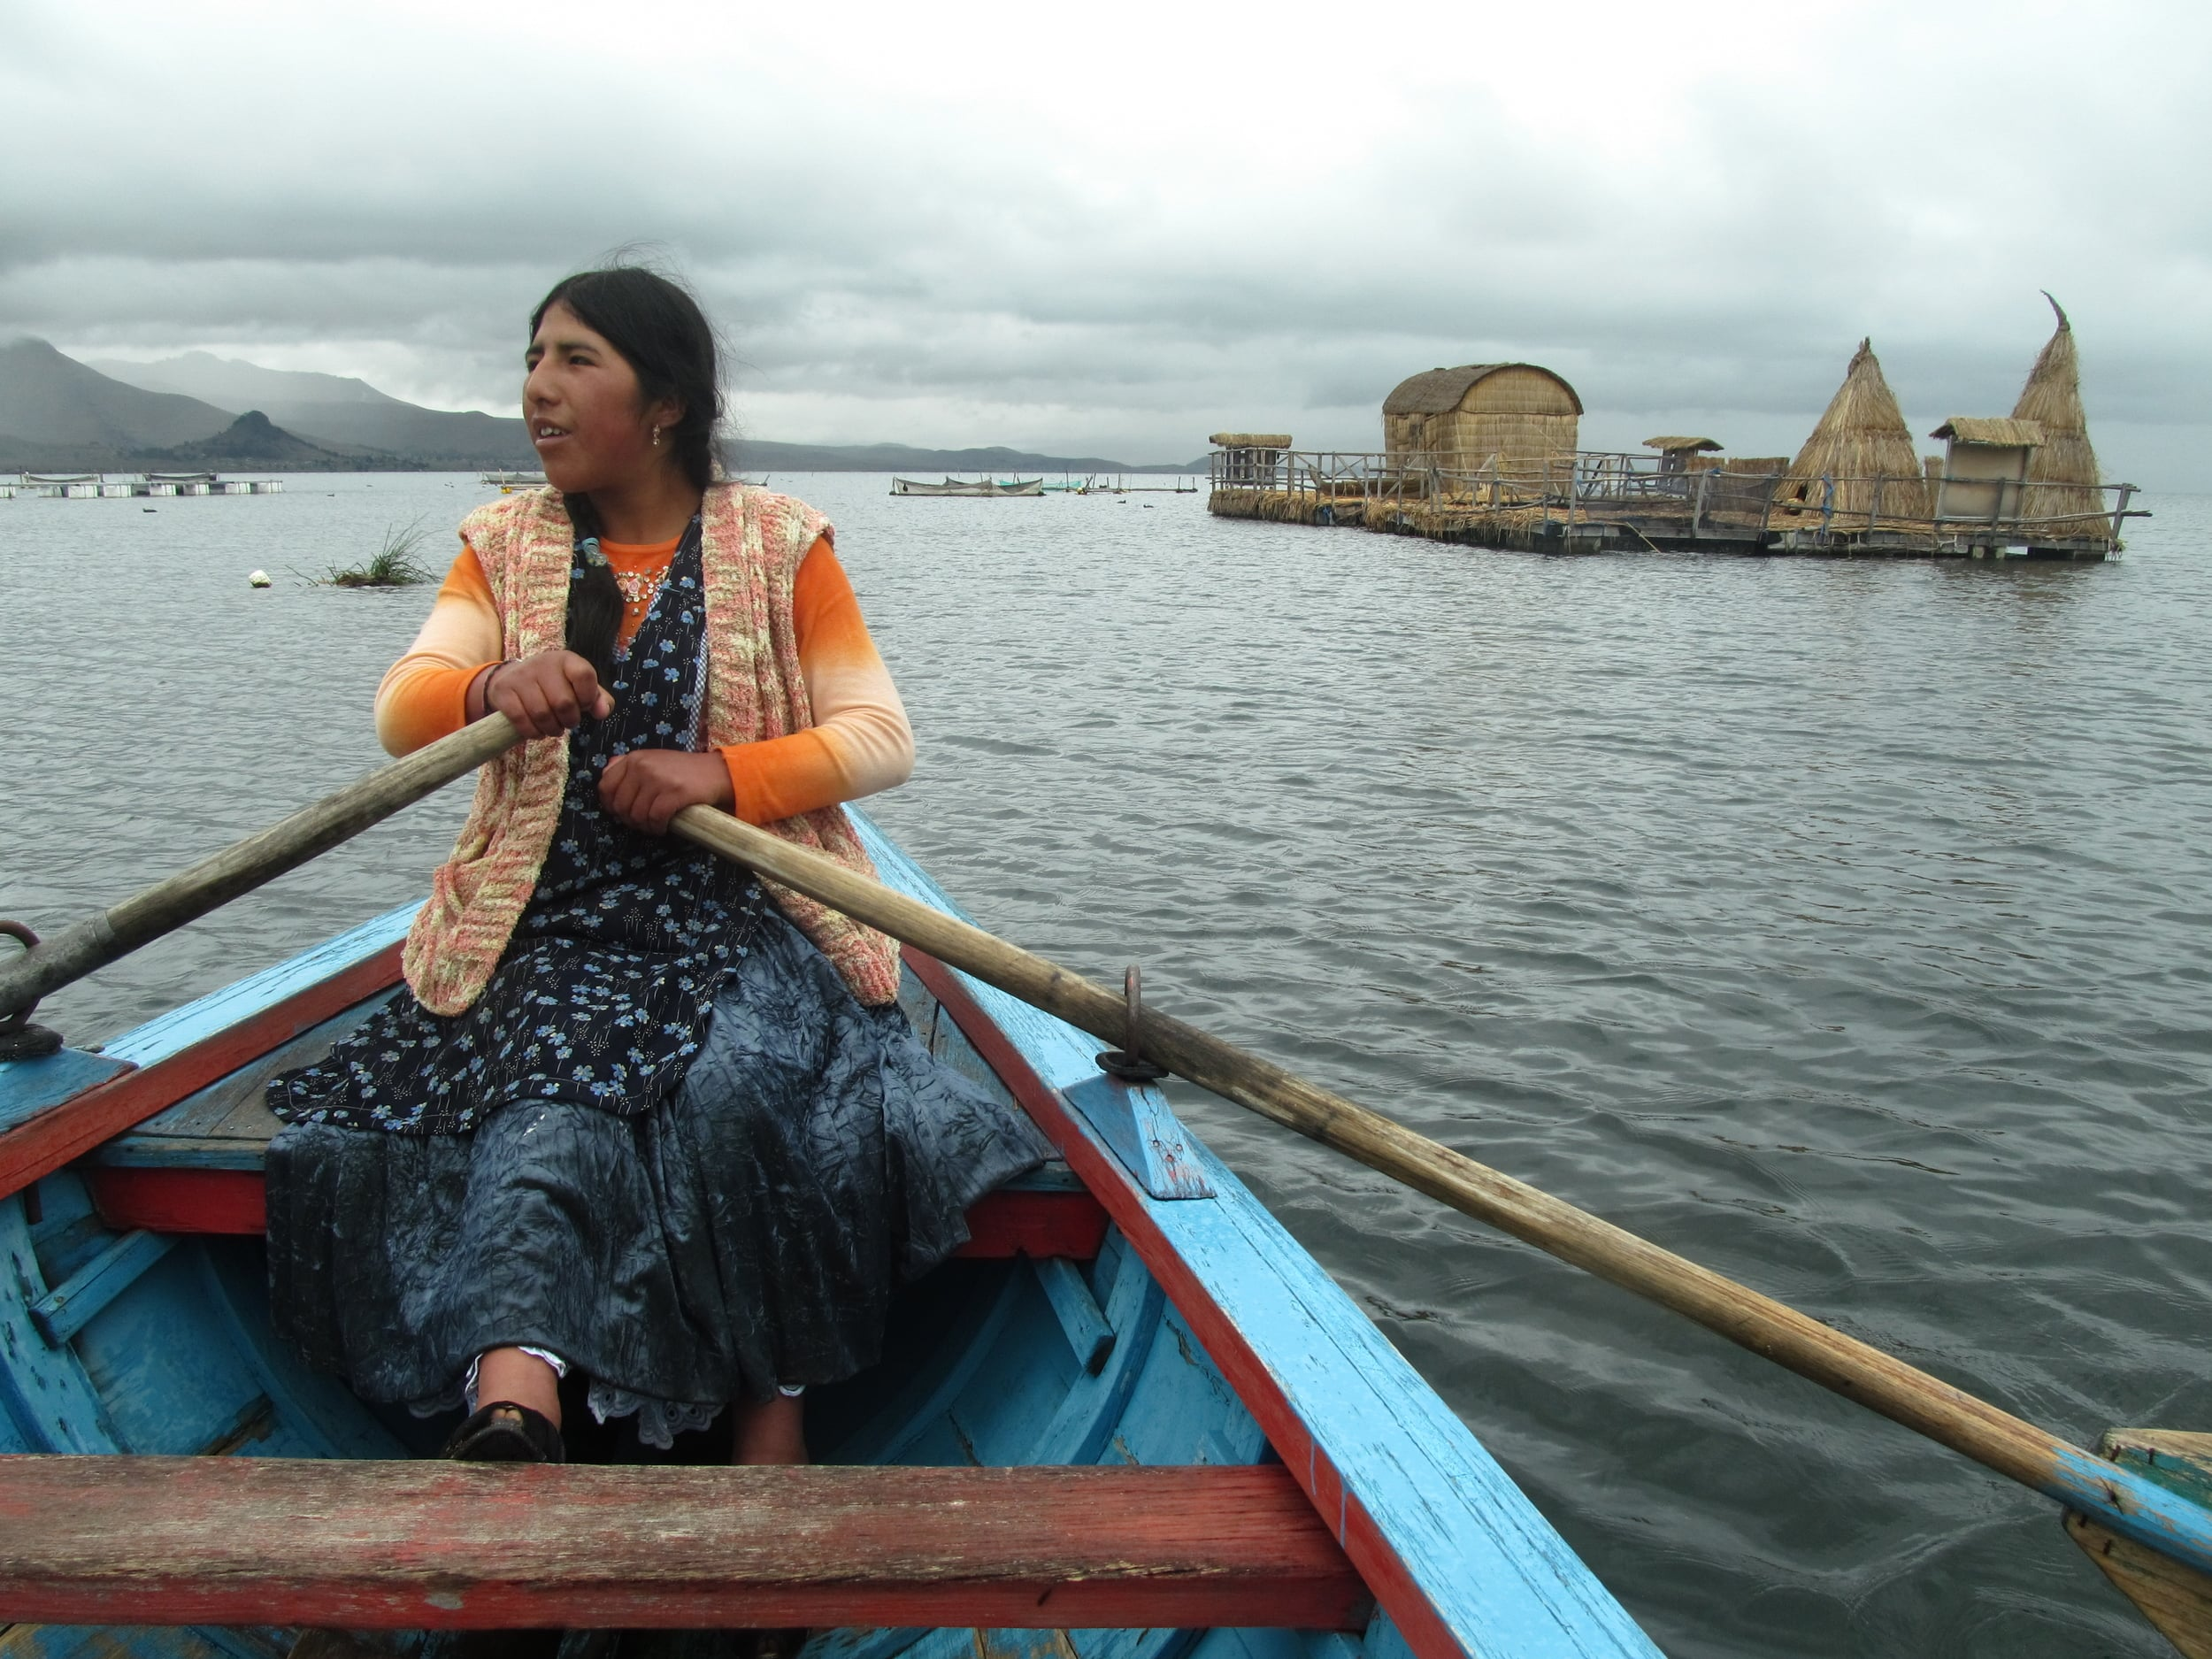 This women paddles us out to the grass island, which displays information on the water frog, a species found only in Lago Titicaca and threatened with extinction.